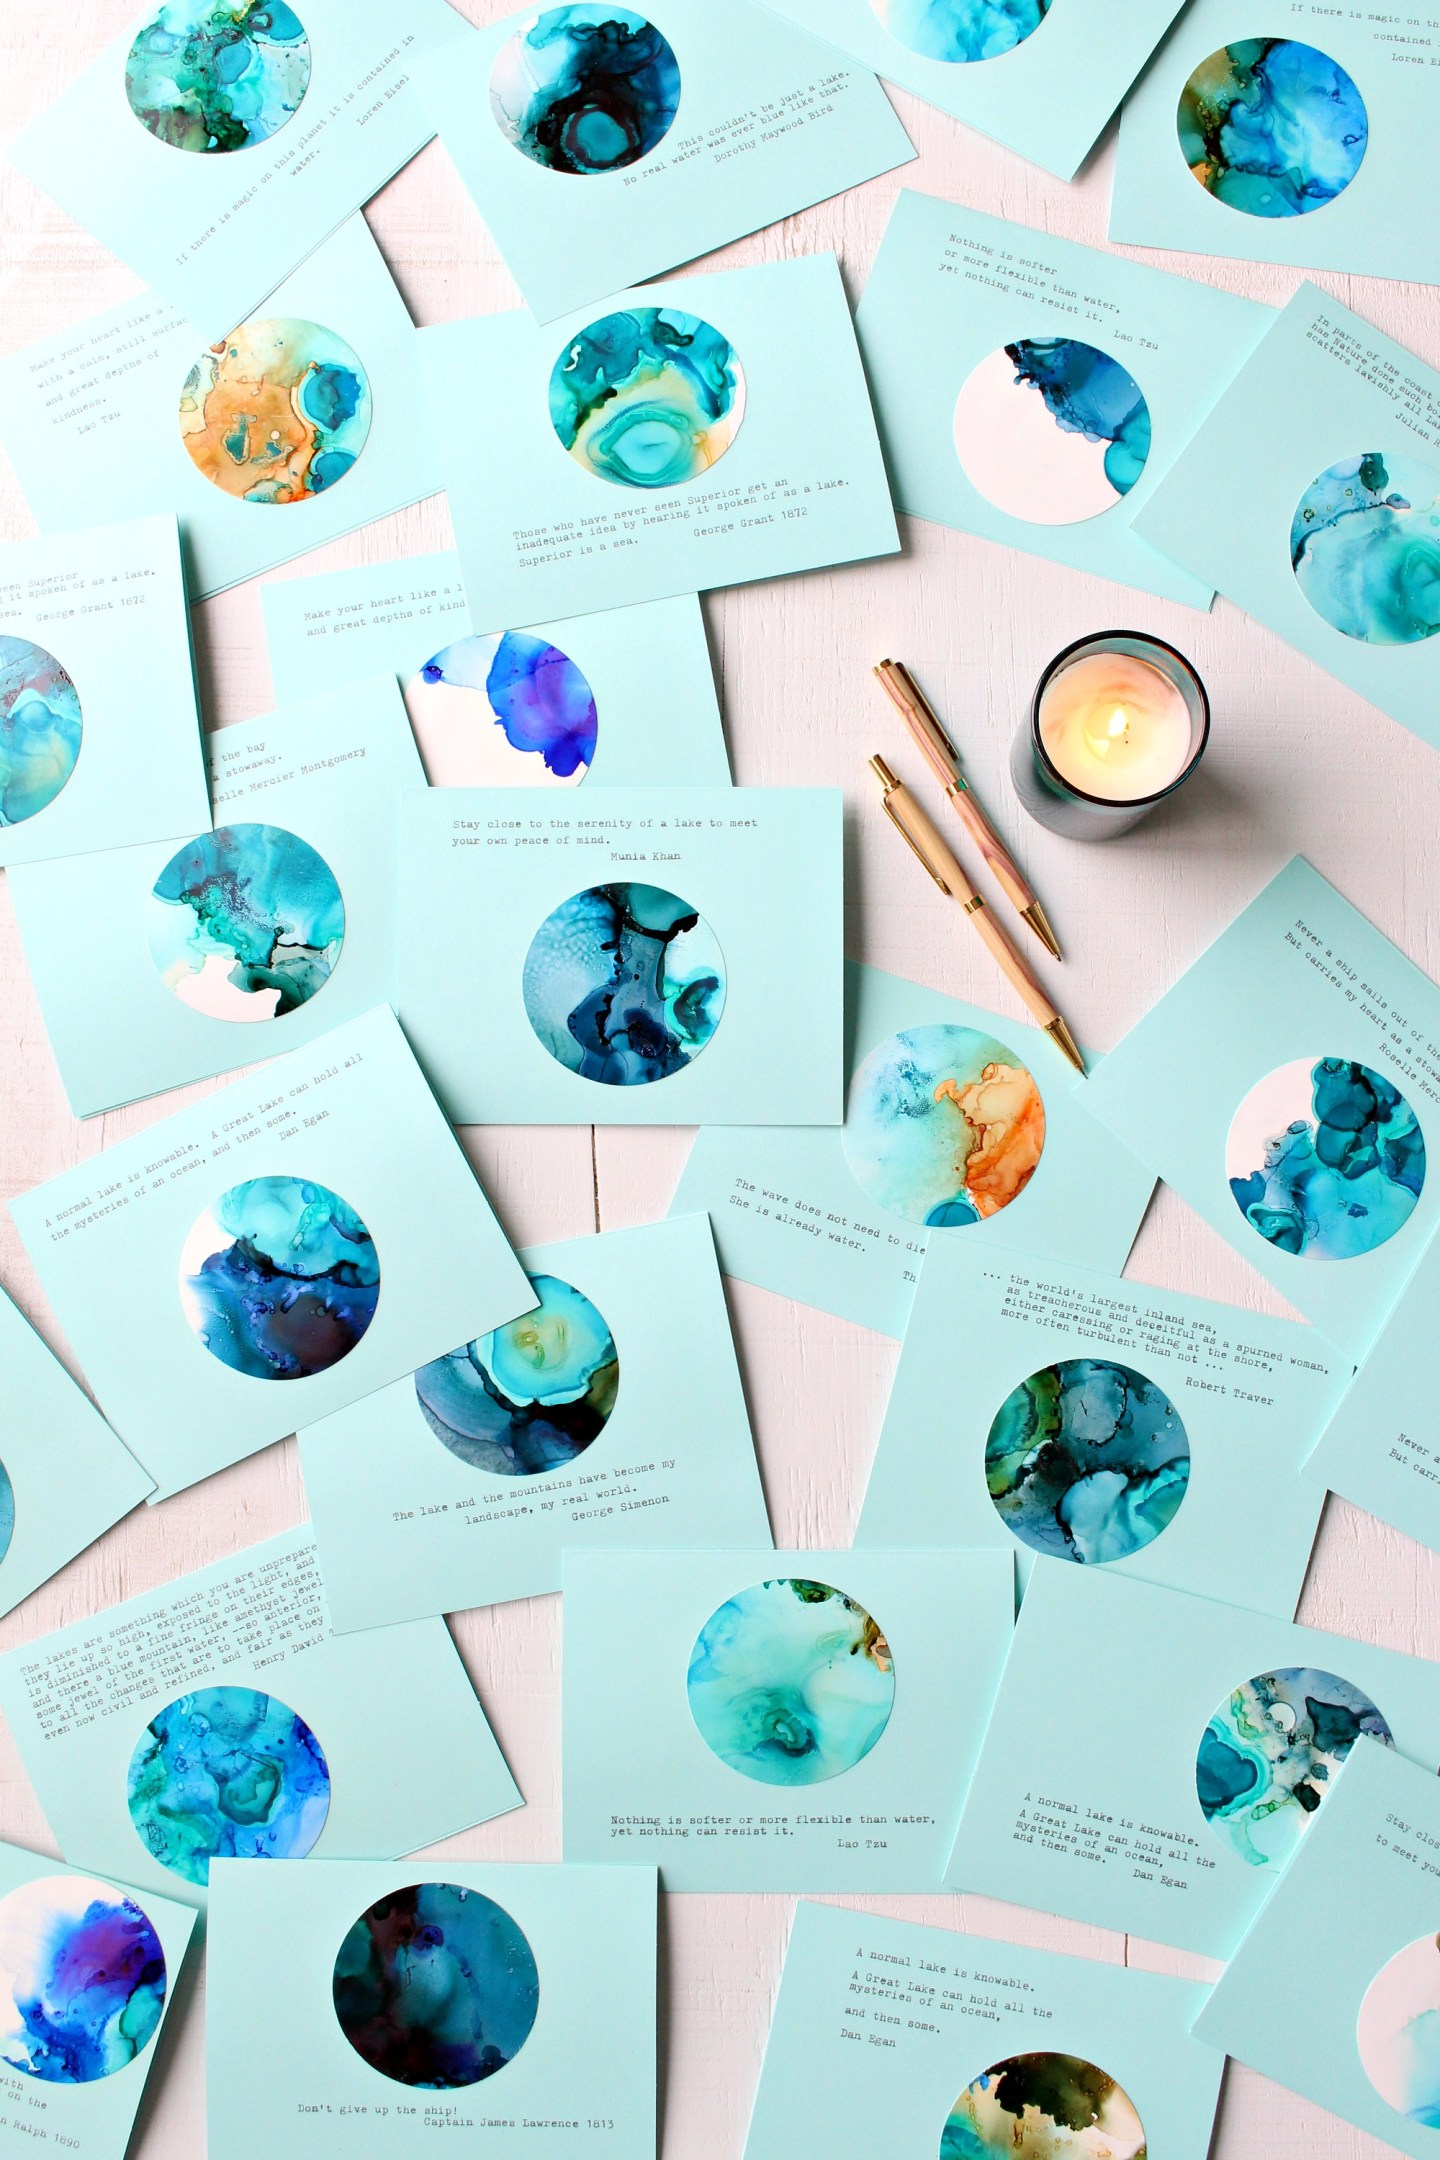 Handmade Lake Superior Note Cards - Learn How to Make These DIY Alcohol Ink Note Cards with Lake Superior Vibes